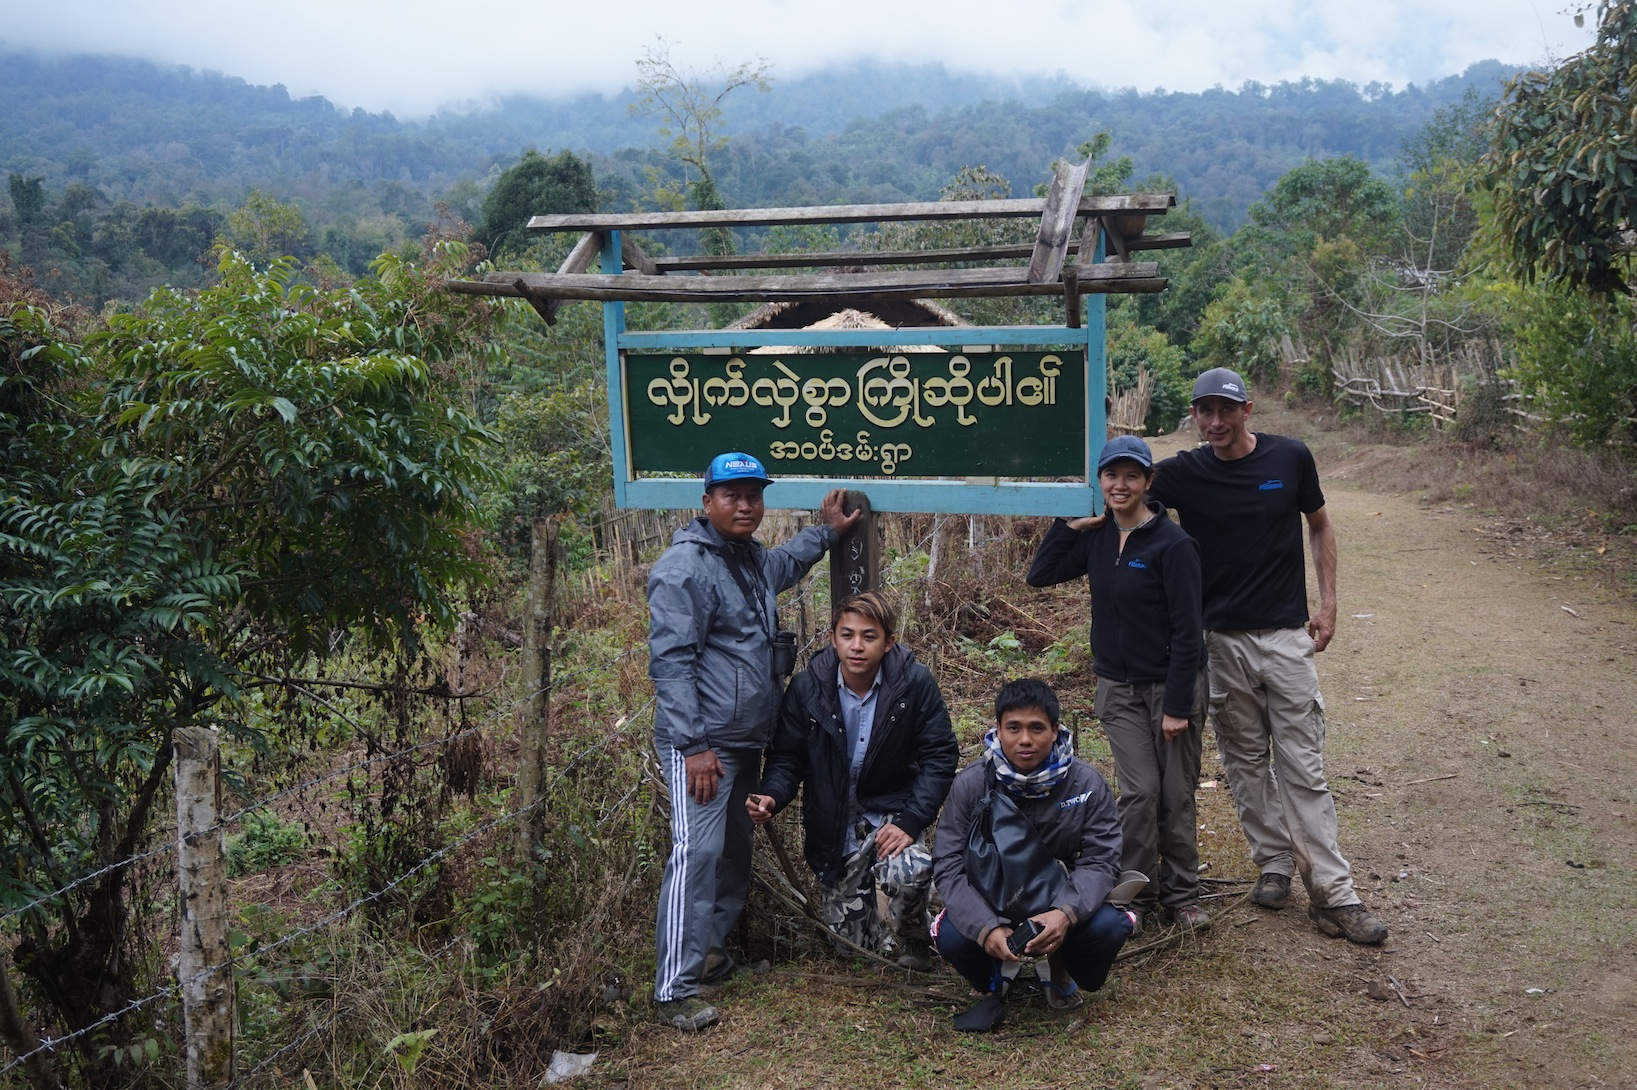 Group photo with Phonganrazi National Park Sign in Myanmar